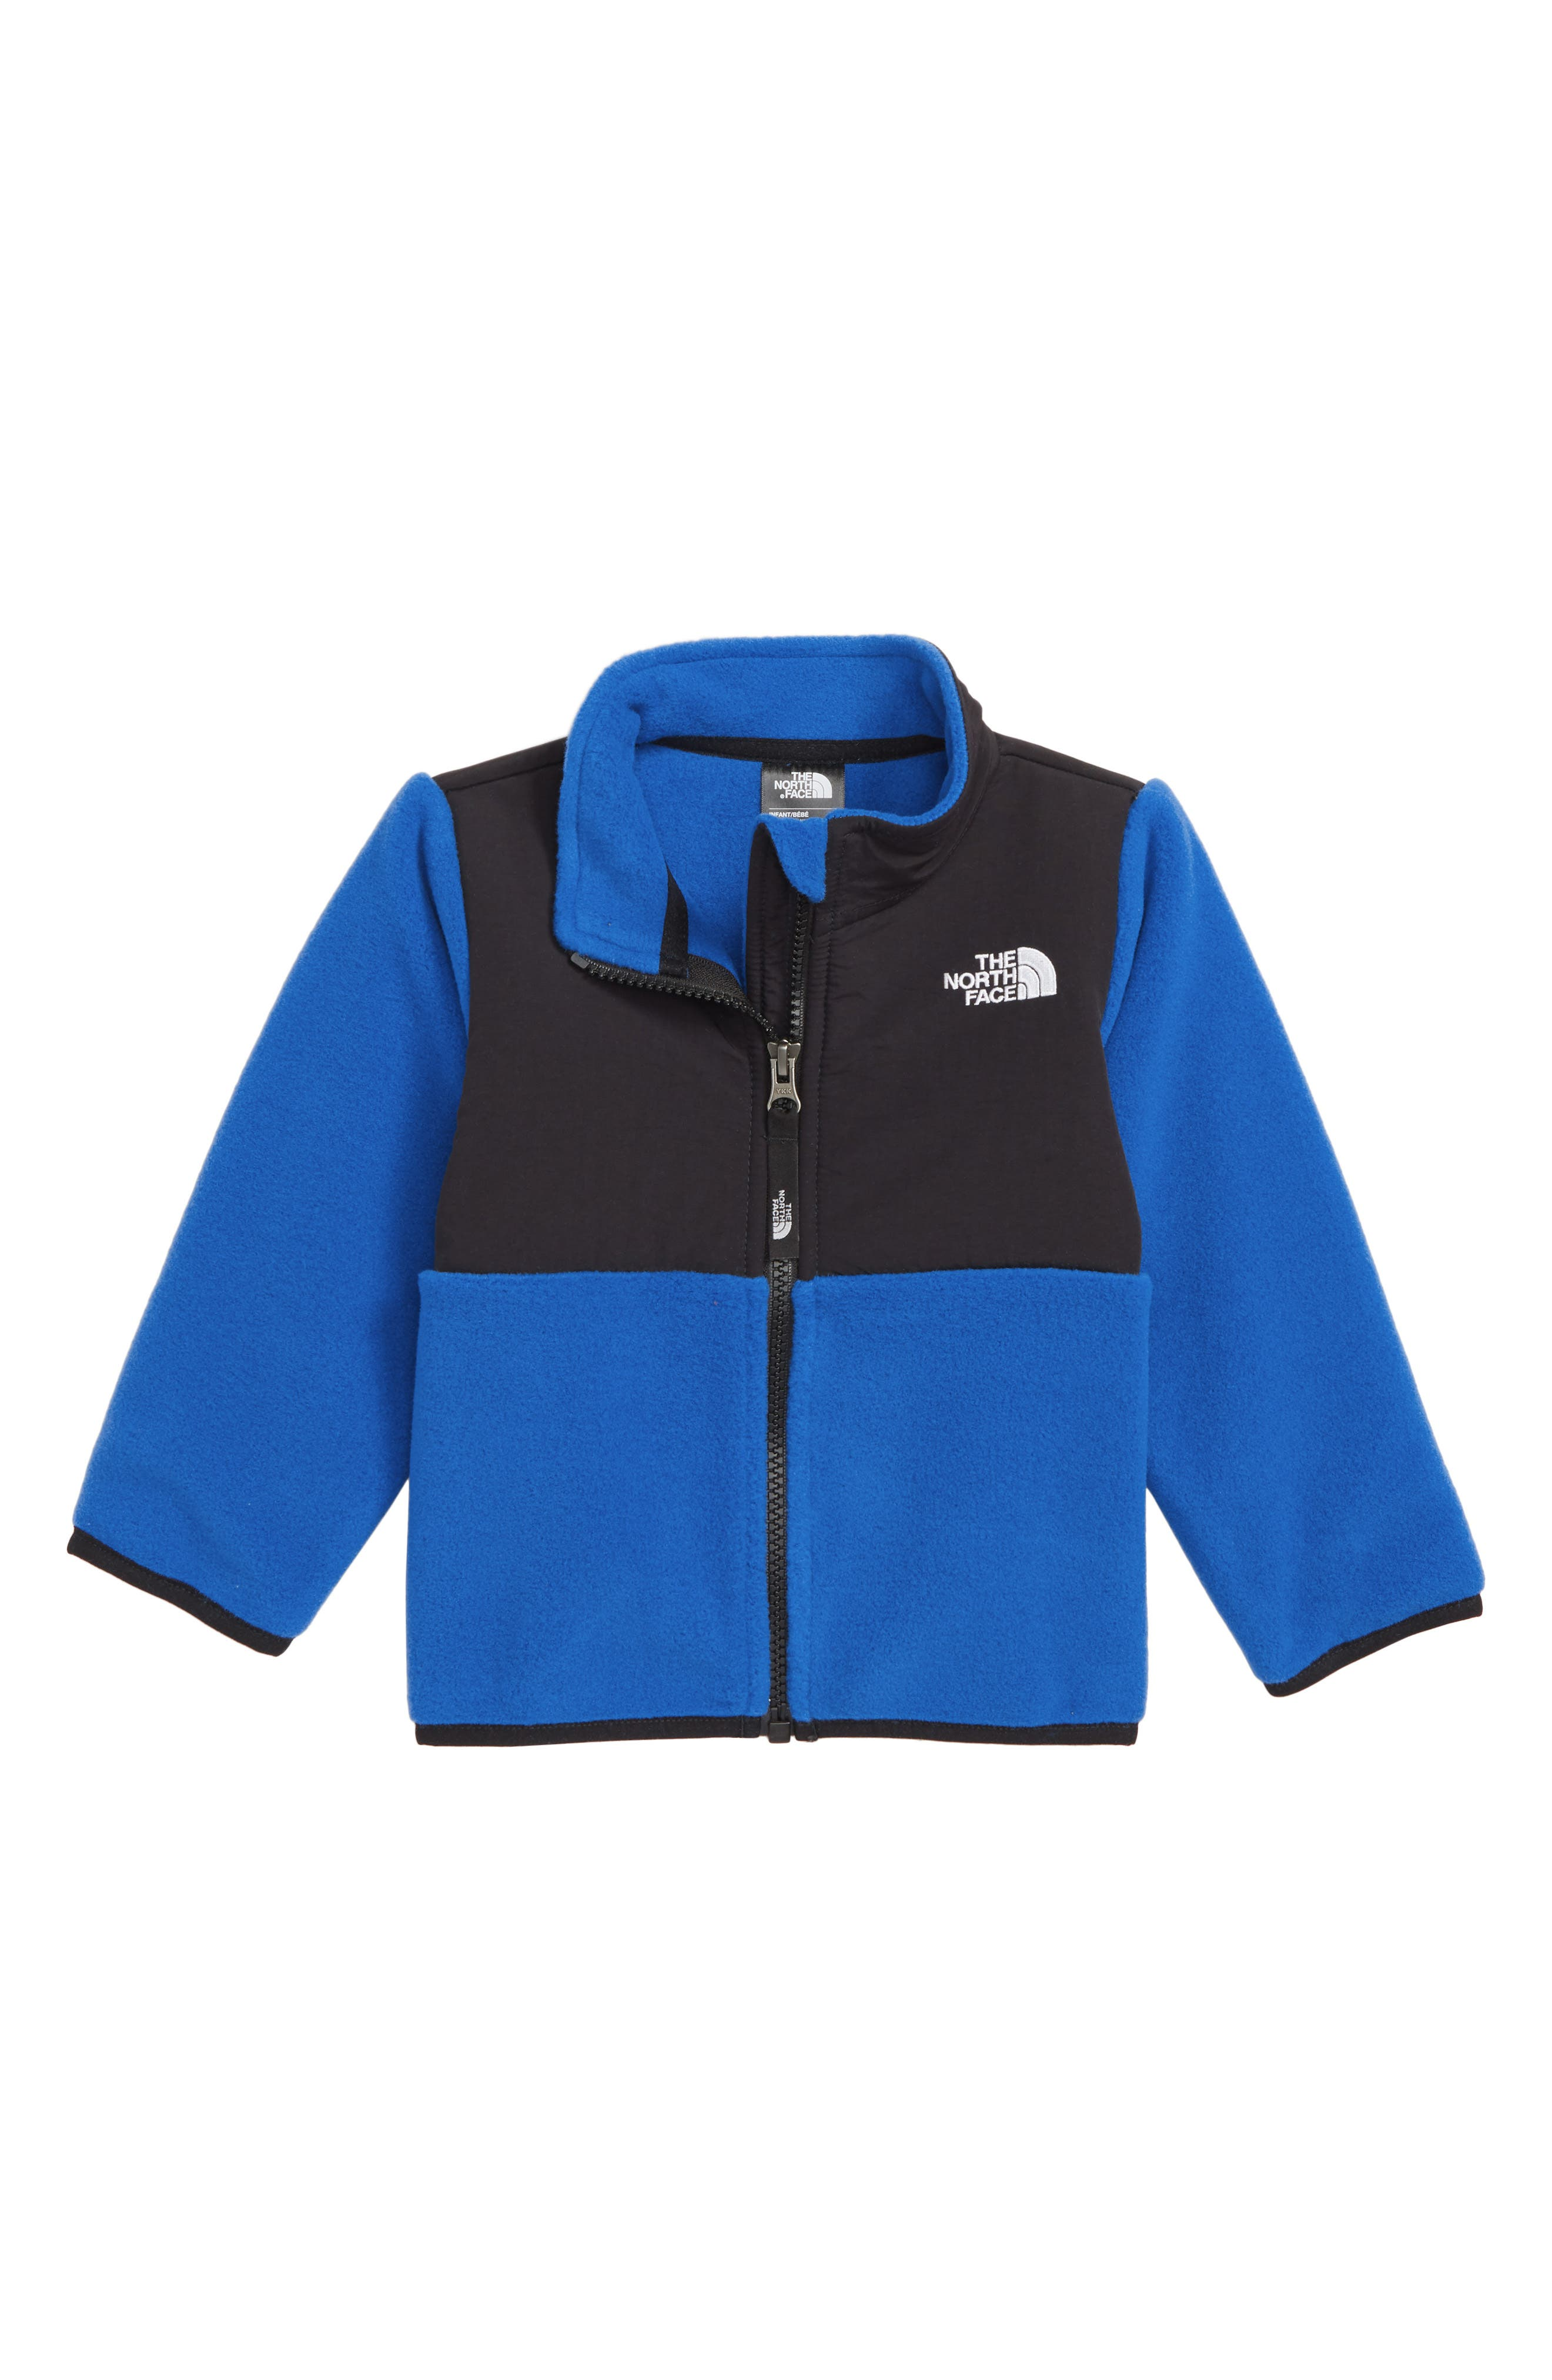 THE NORTH FACE Denali Recycled Fleece Jacket, Main, color, TURKISH SEA